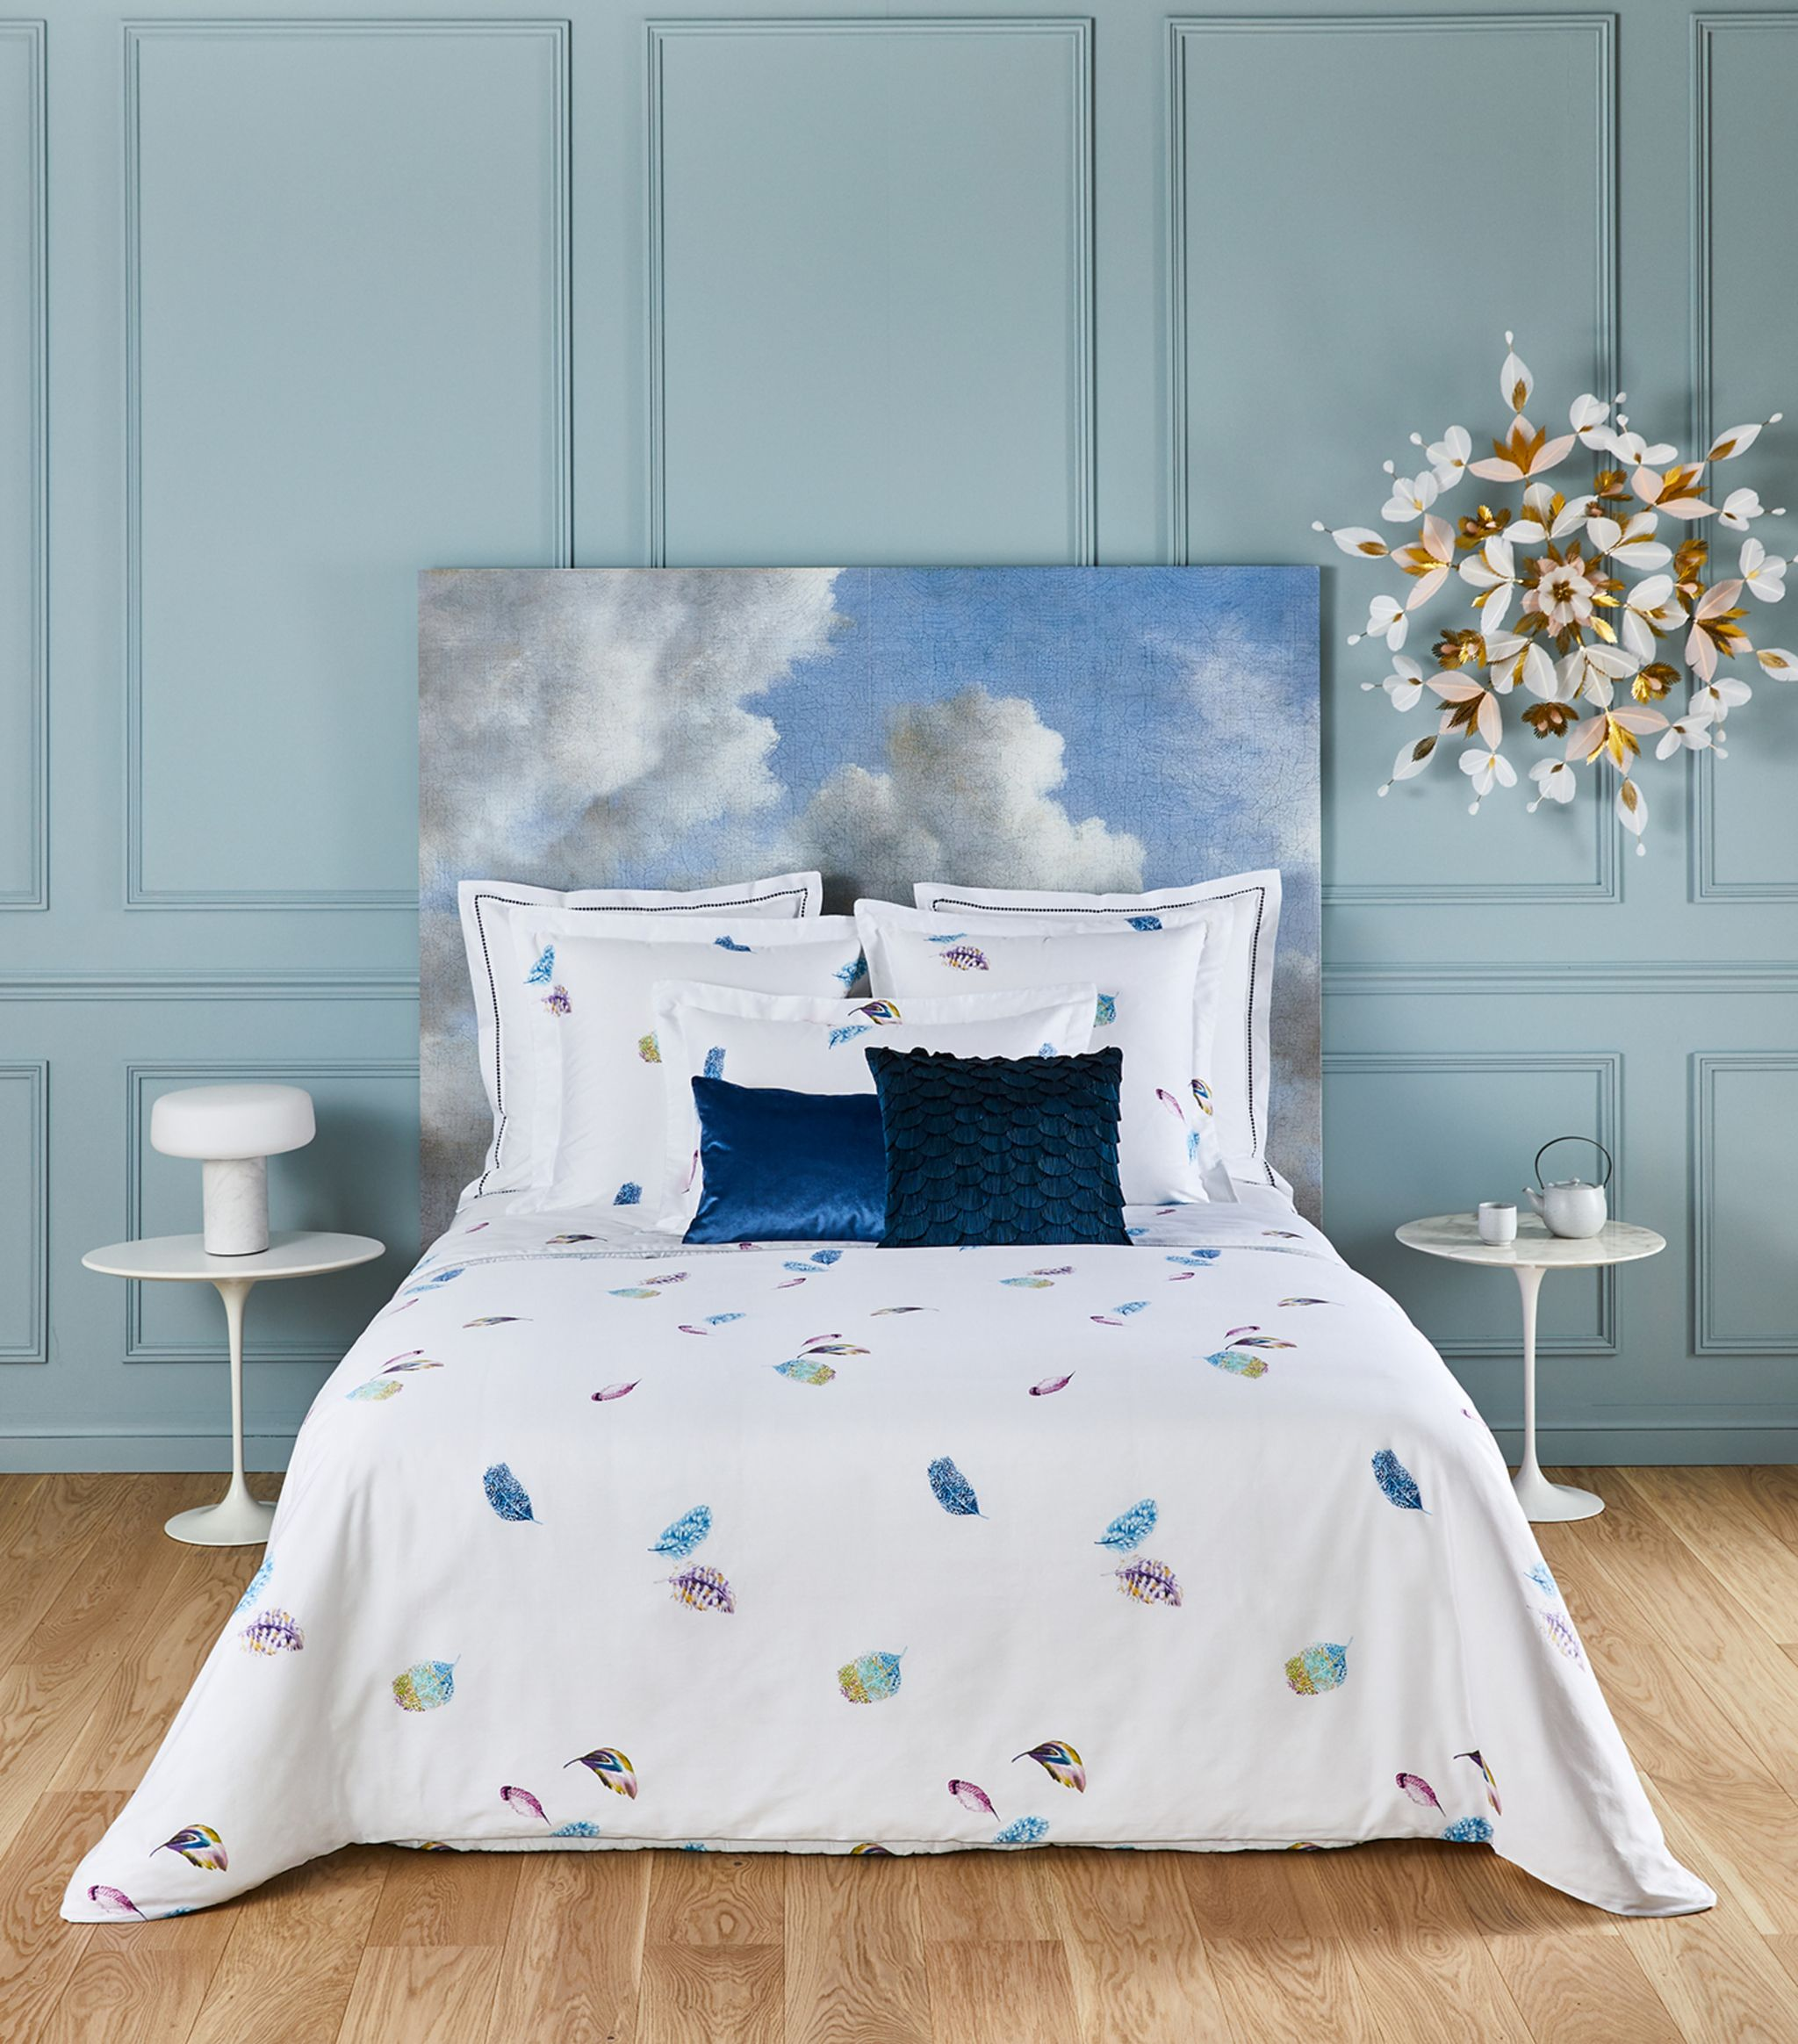 Luxury Bedding Sets Duvet Covers Harrods Uk